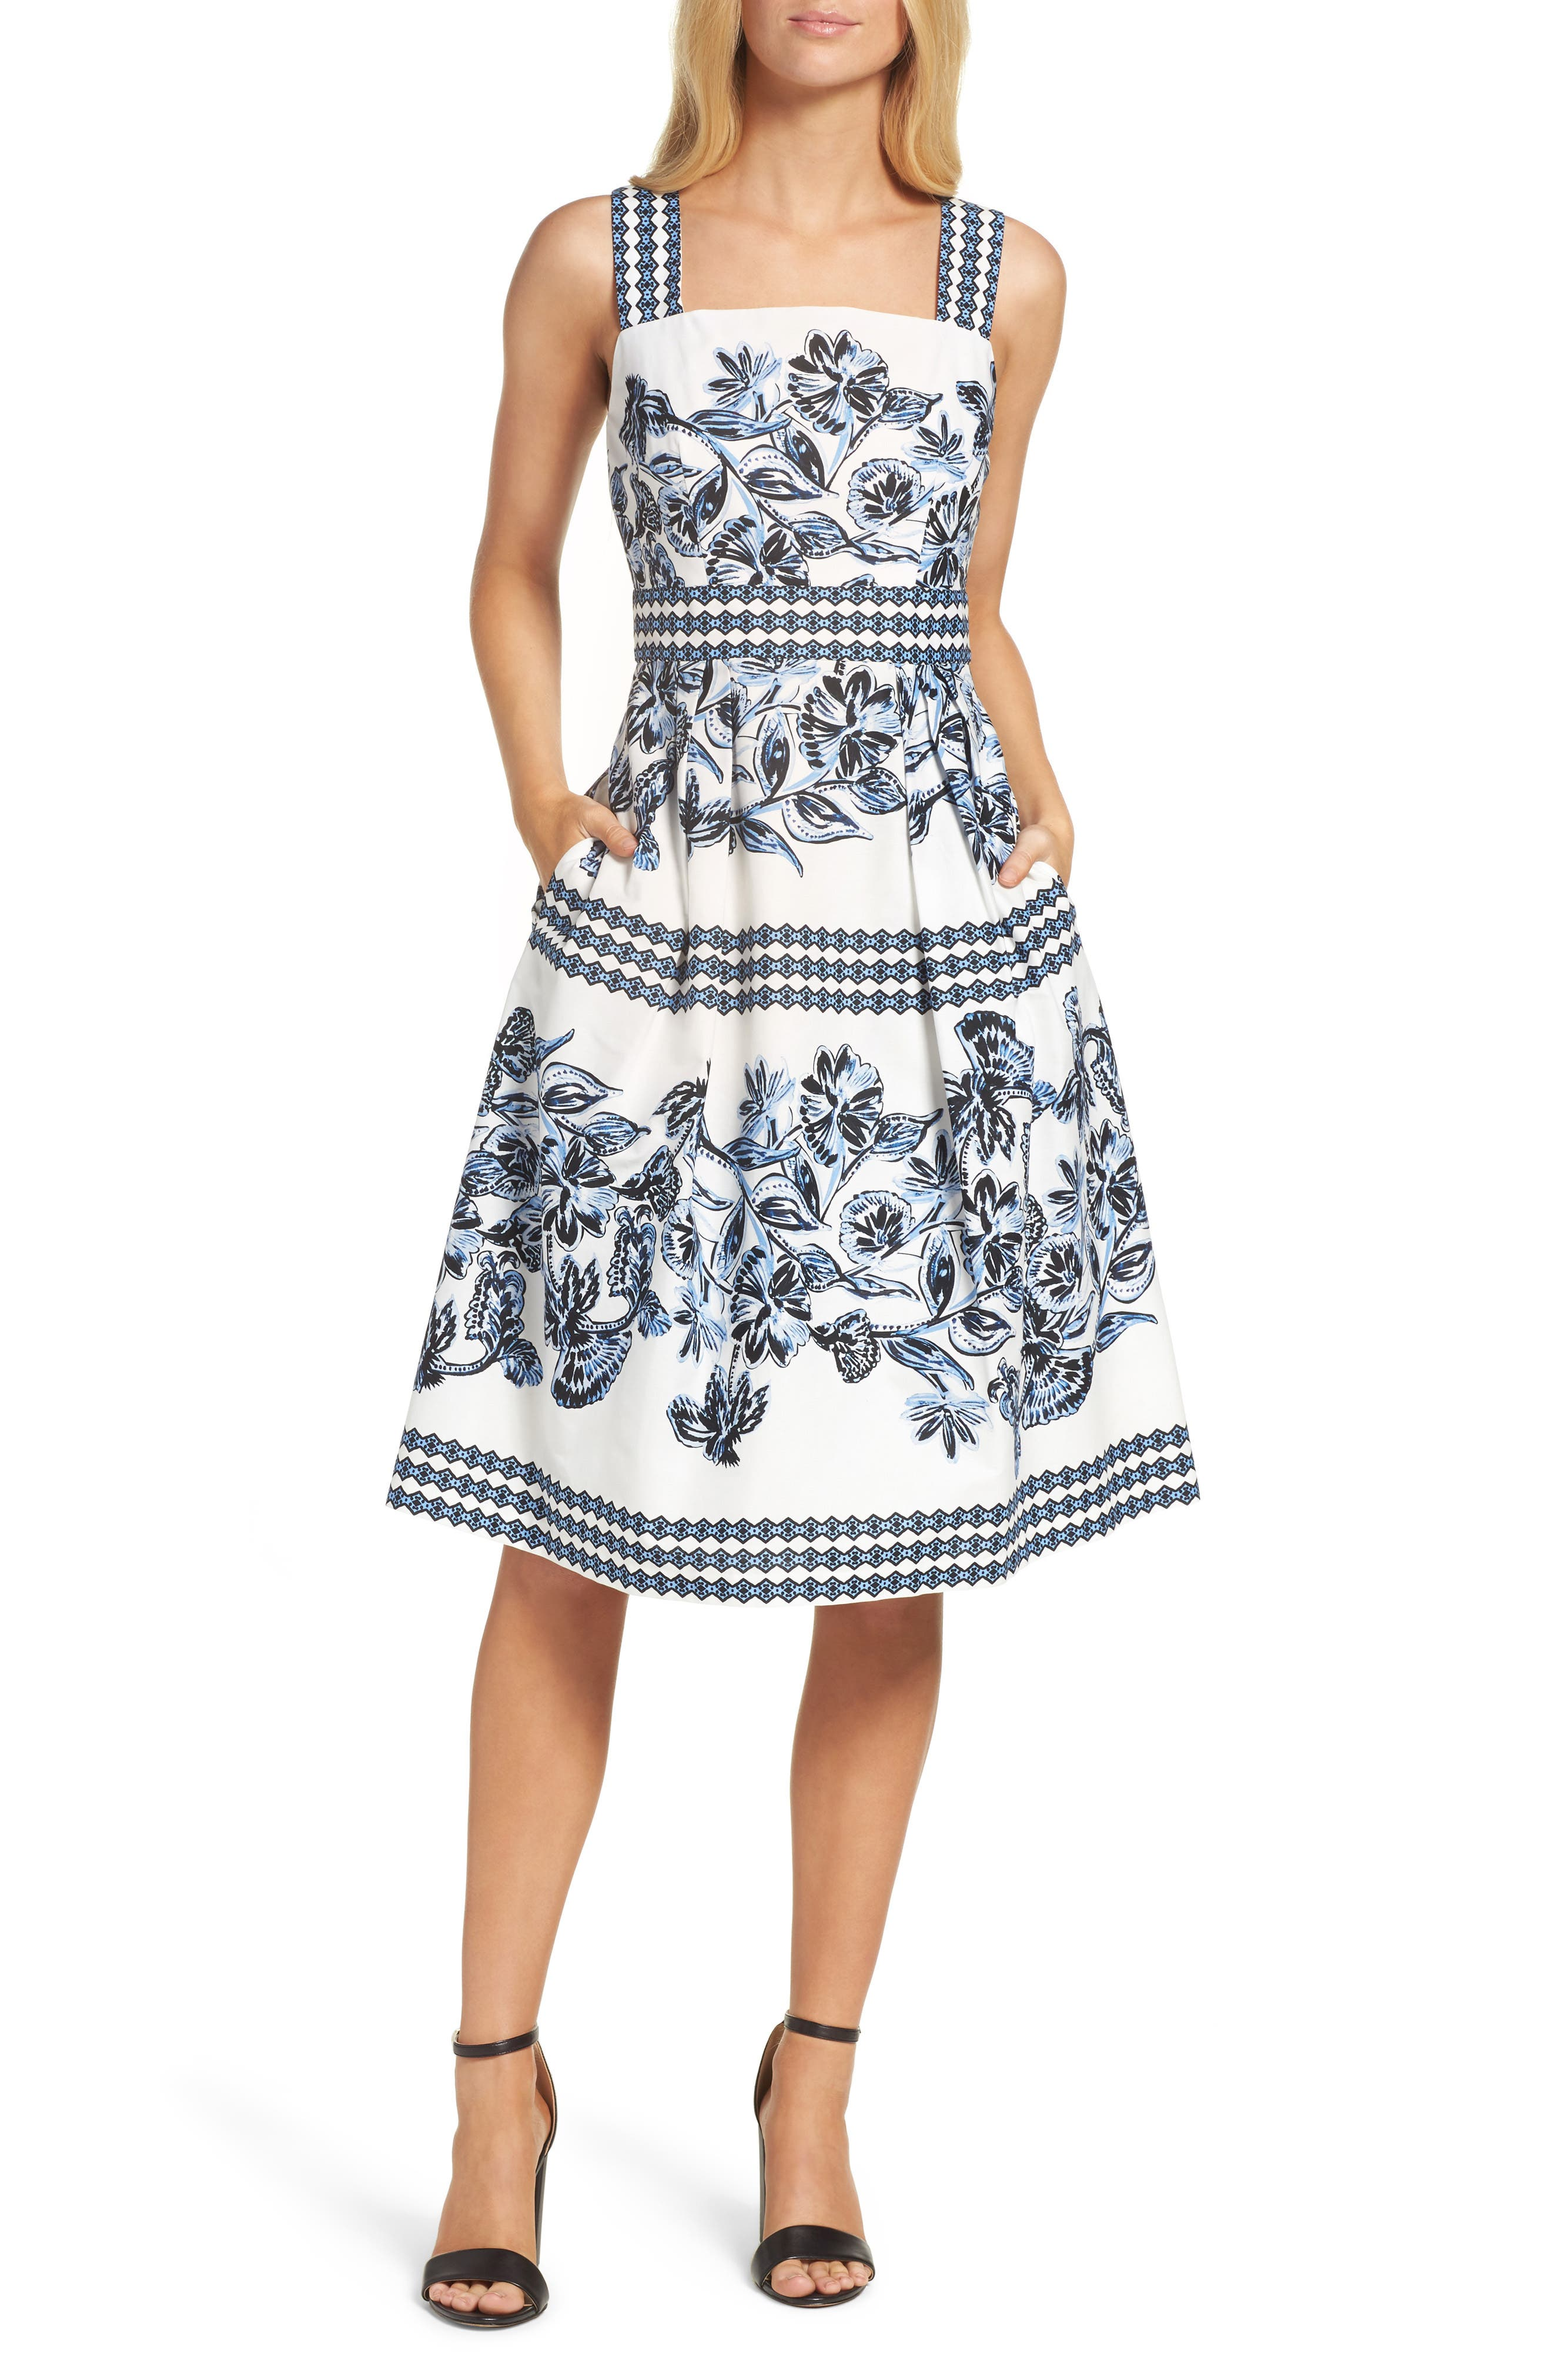 Alternate Image 1 Selected - Vince Camuto Fit & Flare Dress (Regular & Petite)